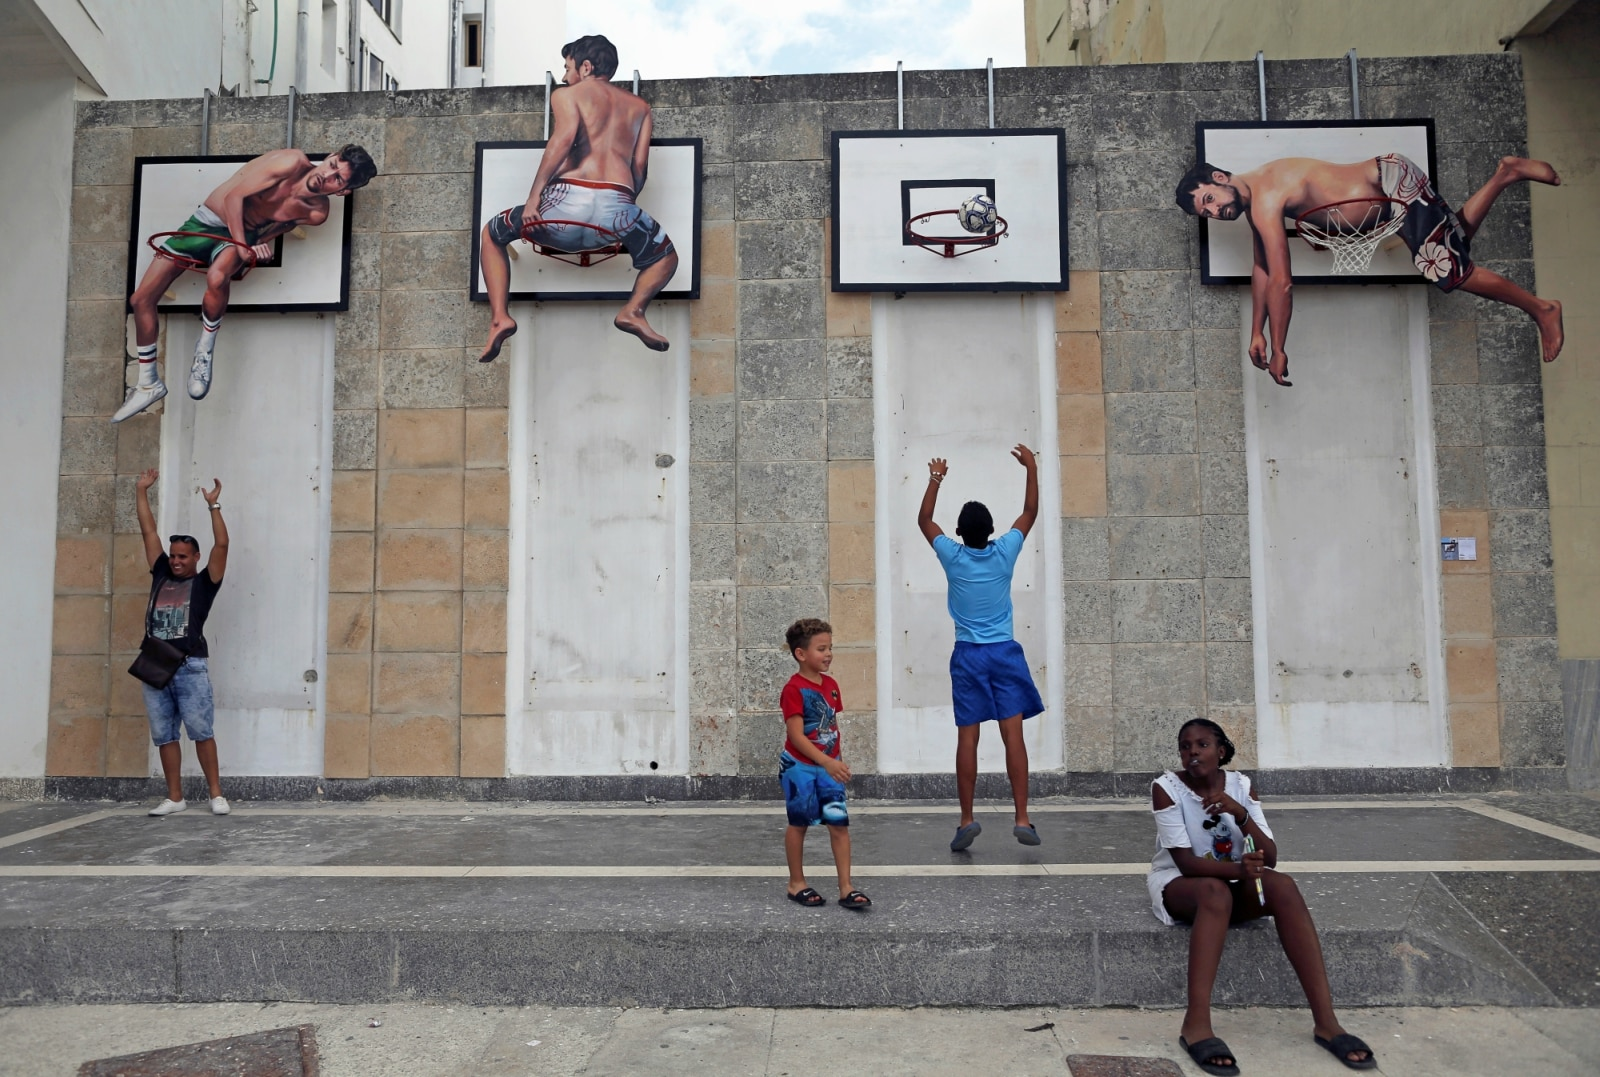 Children play basketball with an installation by Spanish artists Martin and Sicilia during the 13th Havana Biennial, in Havana, Cuba April 12, 2019. REUTERS/Fernando Medina